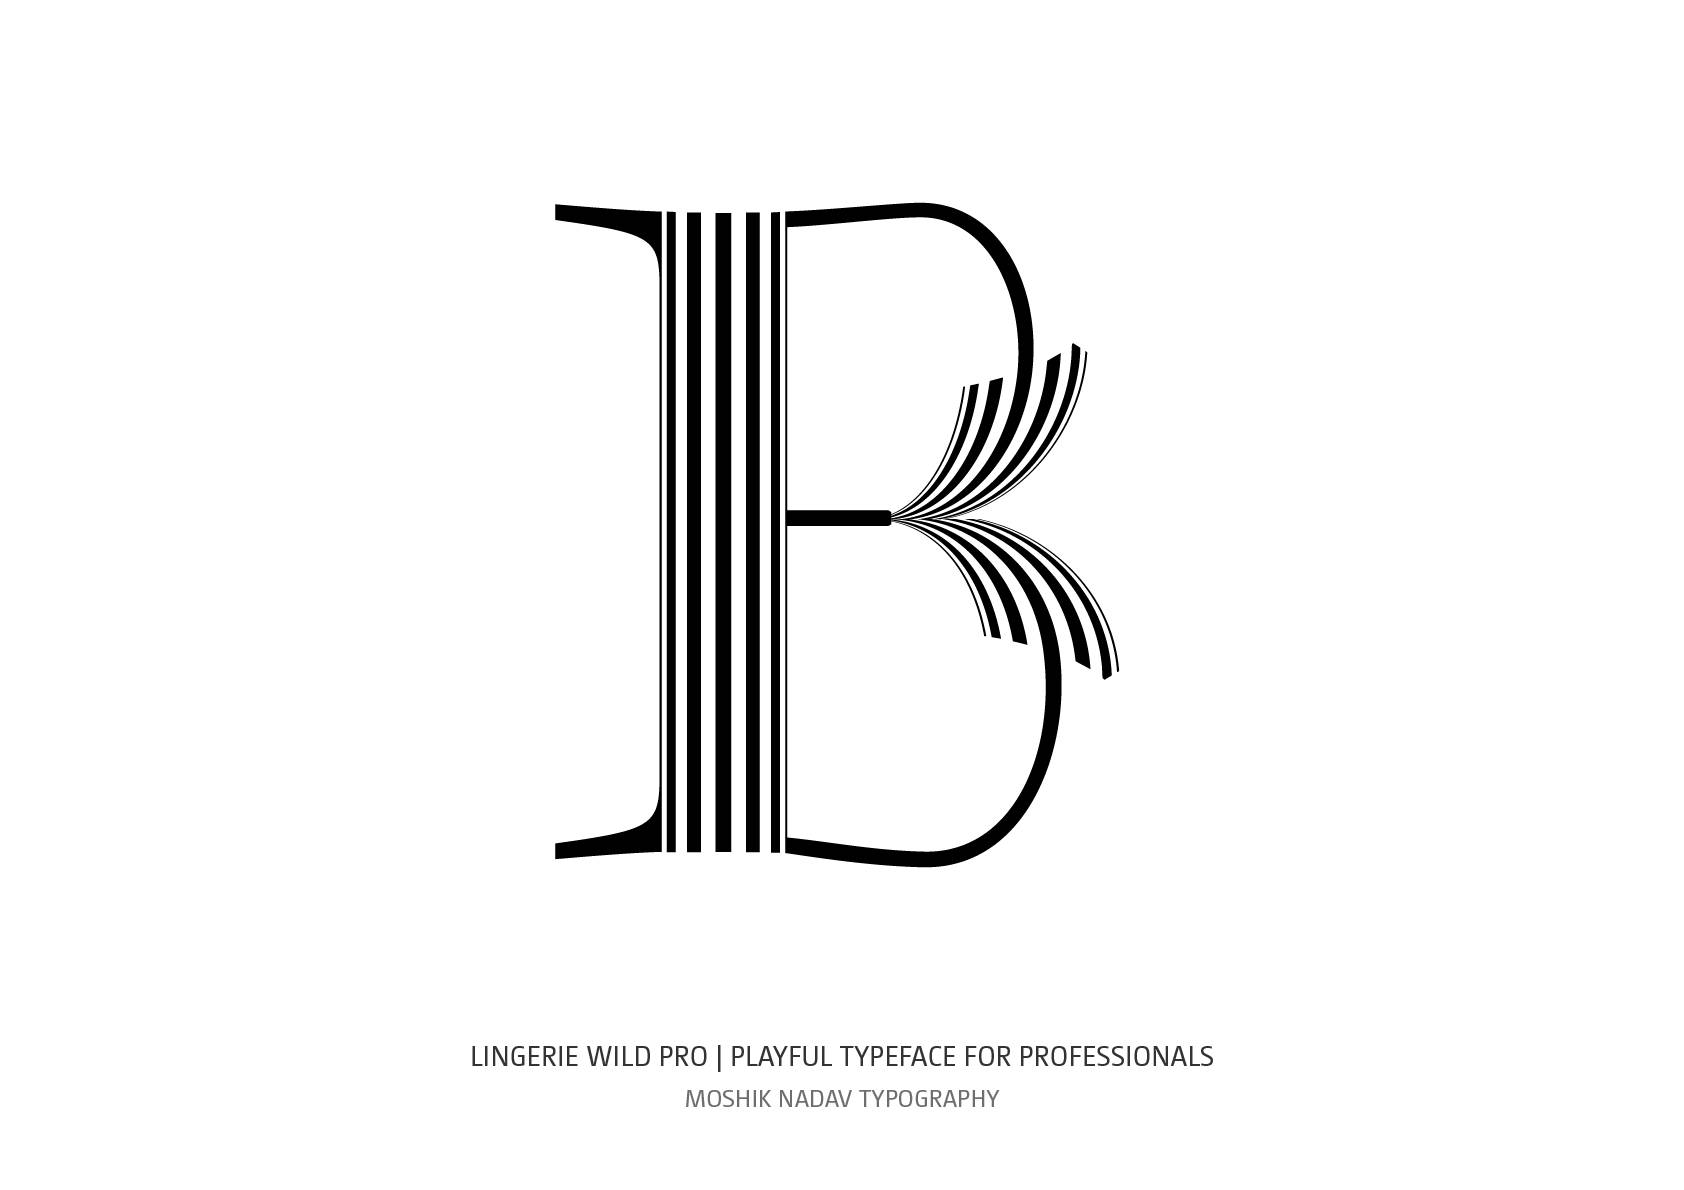 Unique Uppercase B designed with Lingerie Wild Pro Typeface by Moshik Nadav Fashion Typography